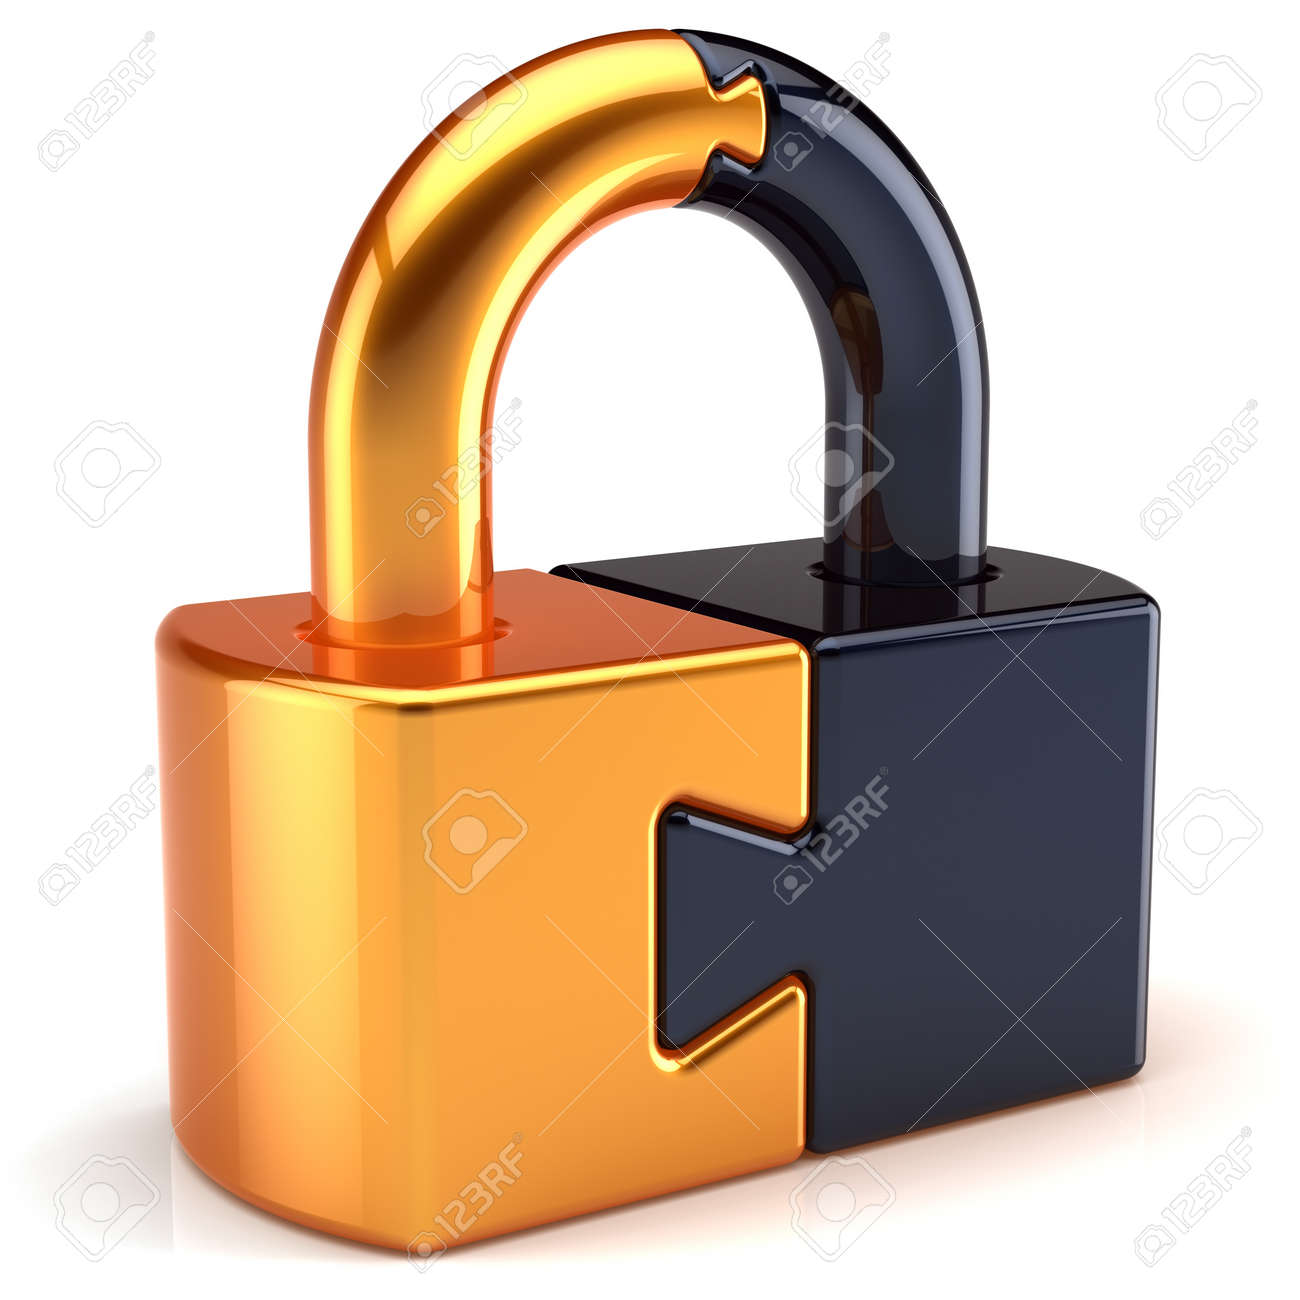 Lock padlock security password safeguard. Closed puzzle link secret code encryption abstract colored golden black parts. System access icon concept. Detailed 3d render. Isolated on white background Stock Photo - 10845288